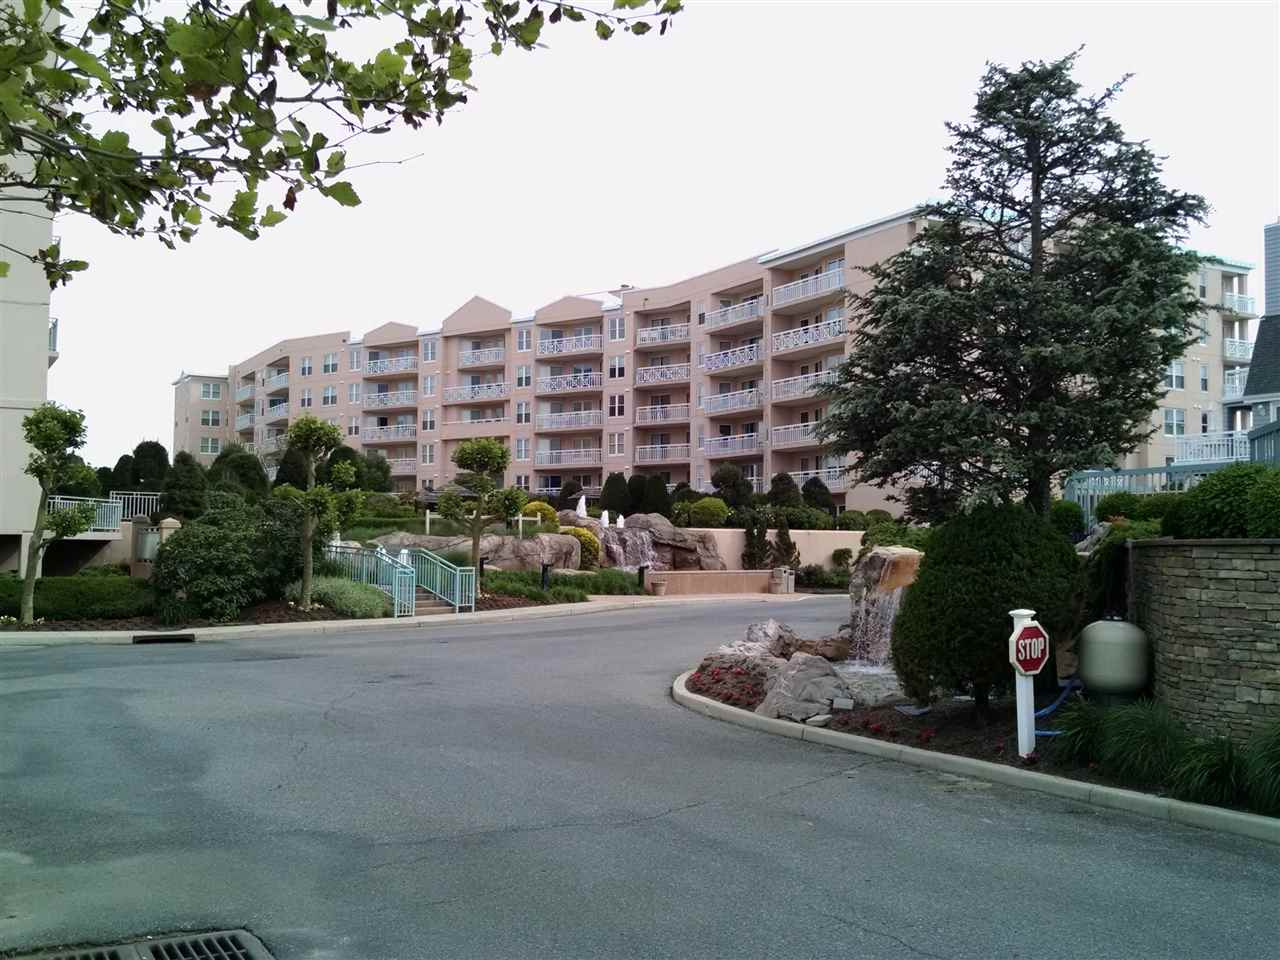 9905, #206 Seapointe Blvd, Lower Township